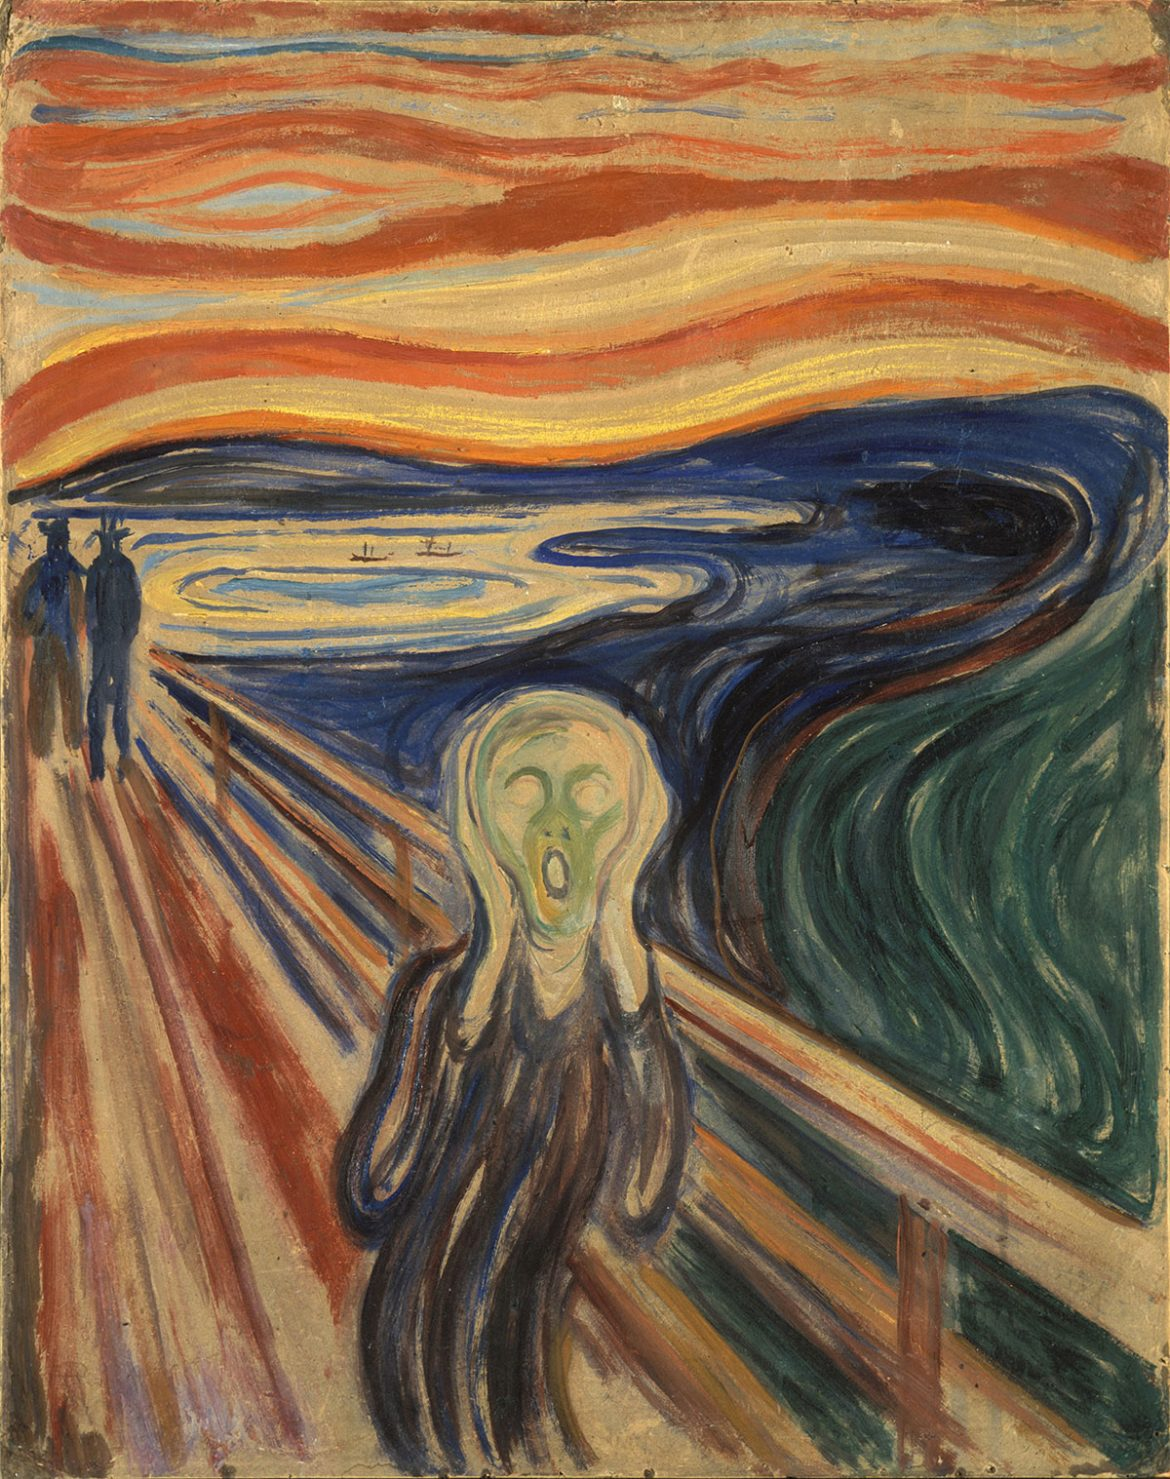 Edvard_Munch_The_Scream_Google_Art_Project